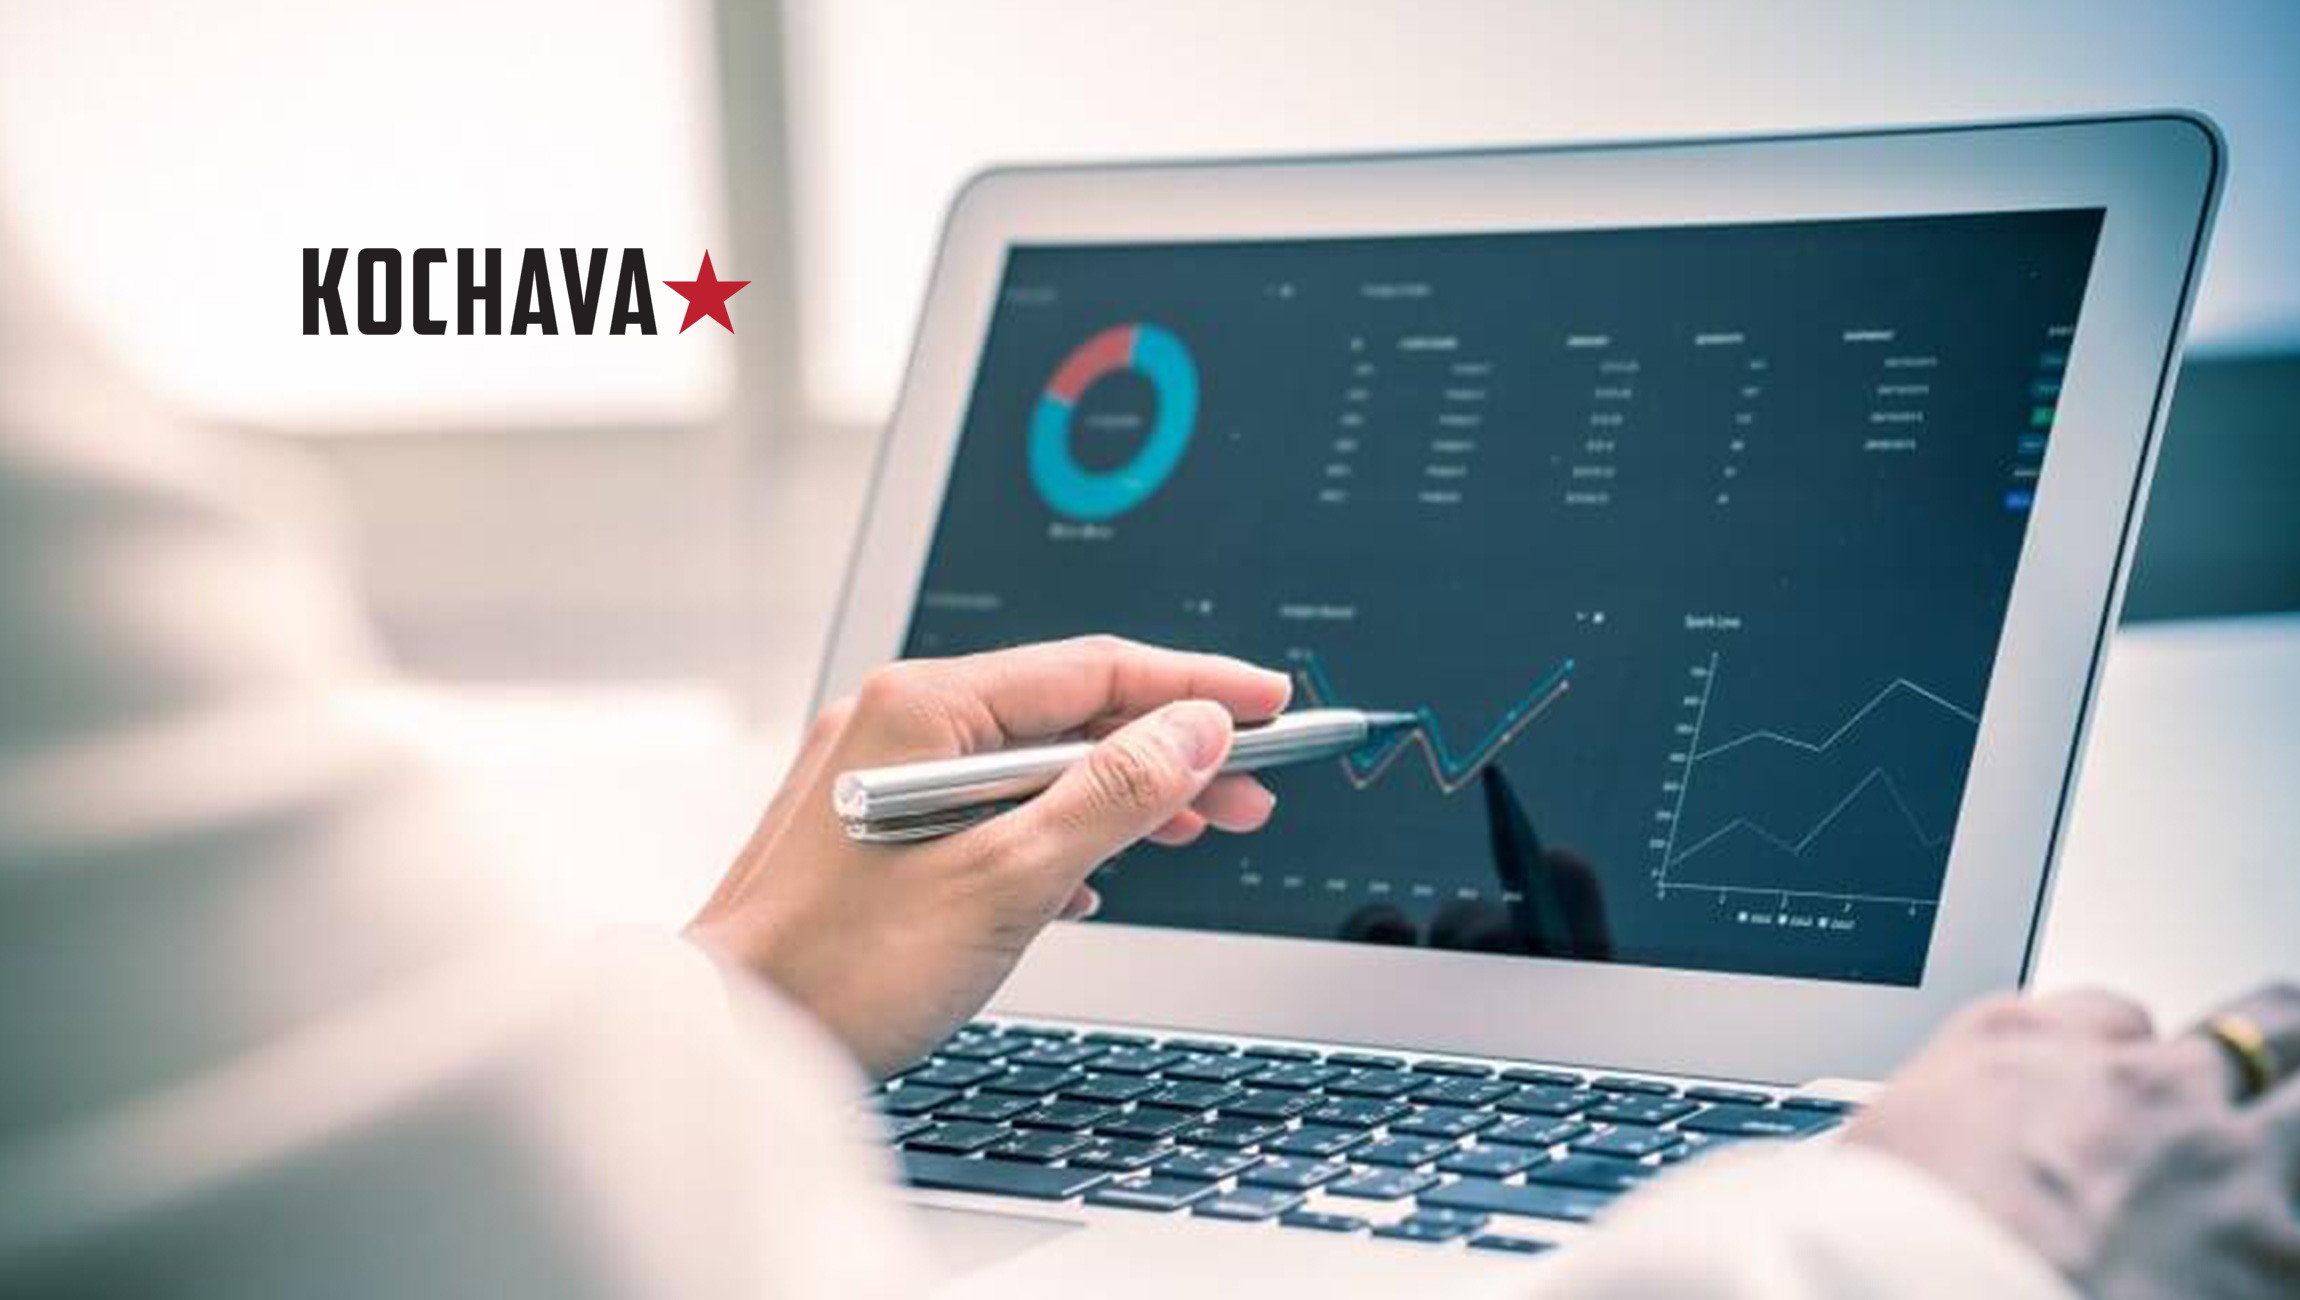 Kochava Collective Provides Audience Insights and Data Enrichment at Scale